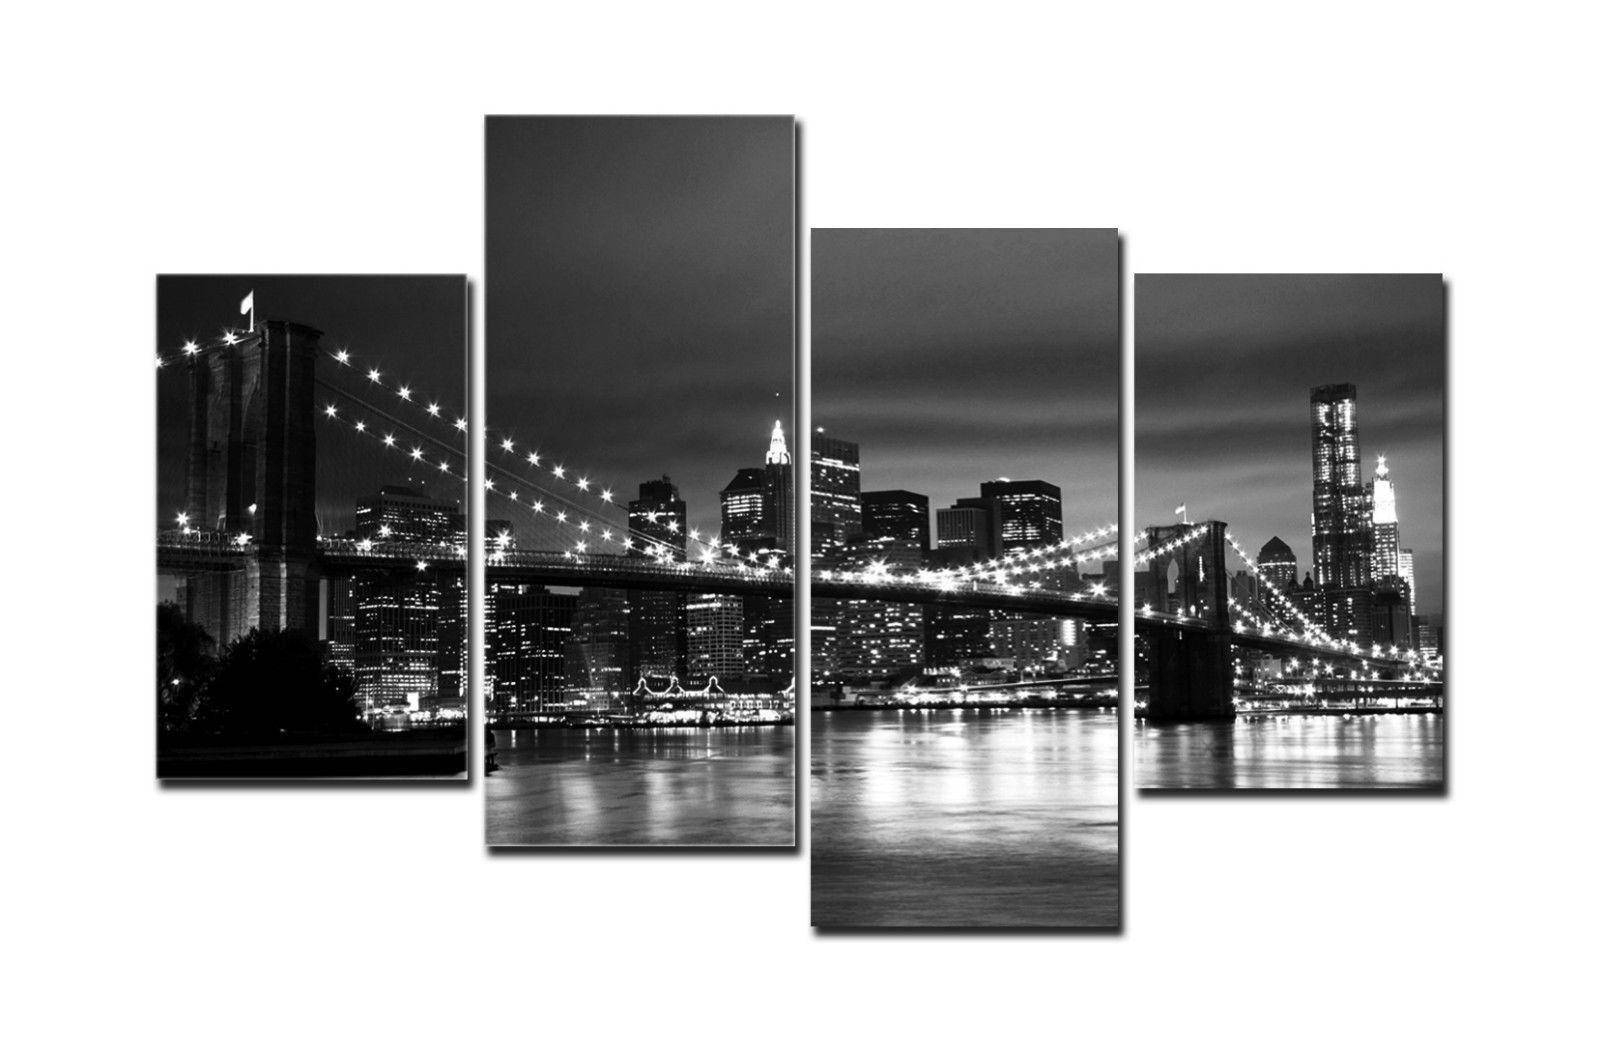 2018 Hd Canvas Print Home Decor Wall Art Painting New York Bridge Inside Recent Black And White New York Canvas Wall Art (View 1 of 20)